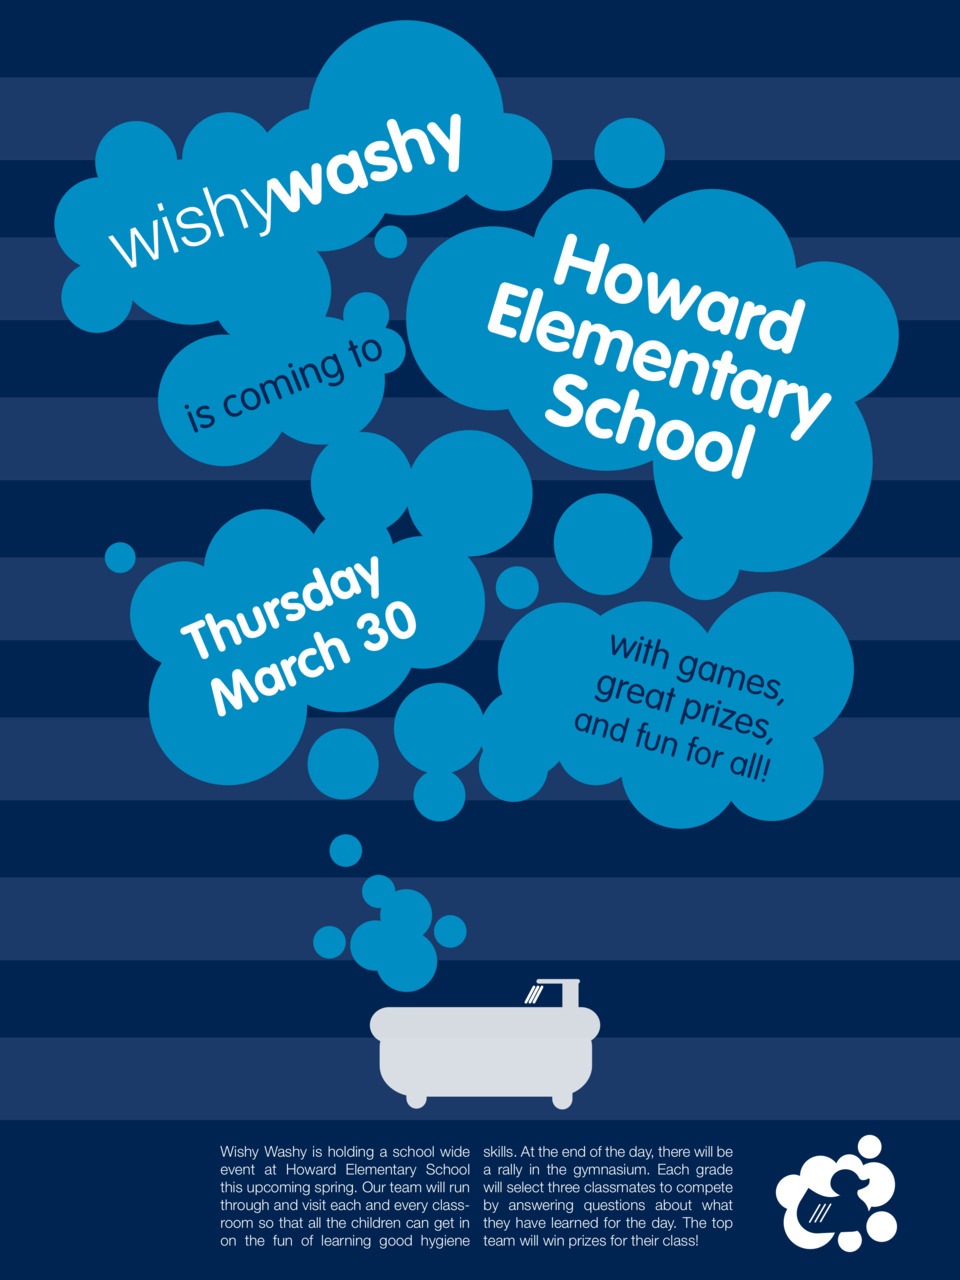 Several poster variations for the fictional non-profit group Wishy Washy. It is geared towards children. I'm still deciding as to which works best.